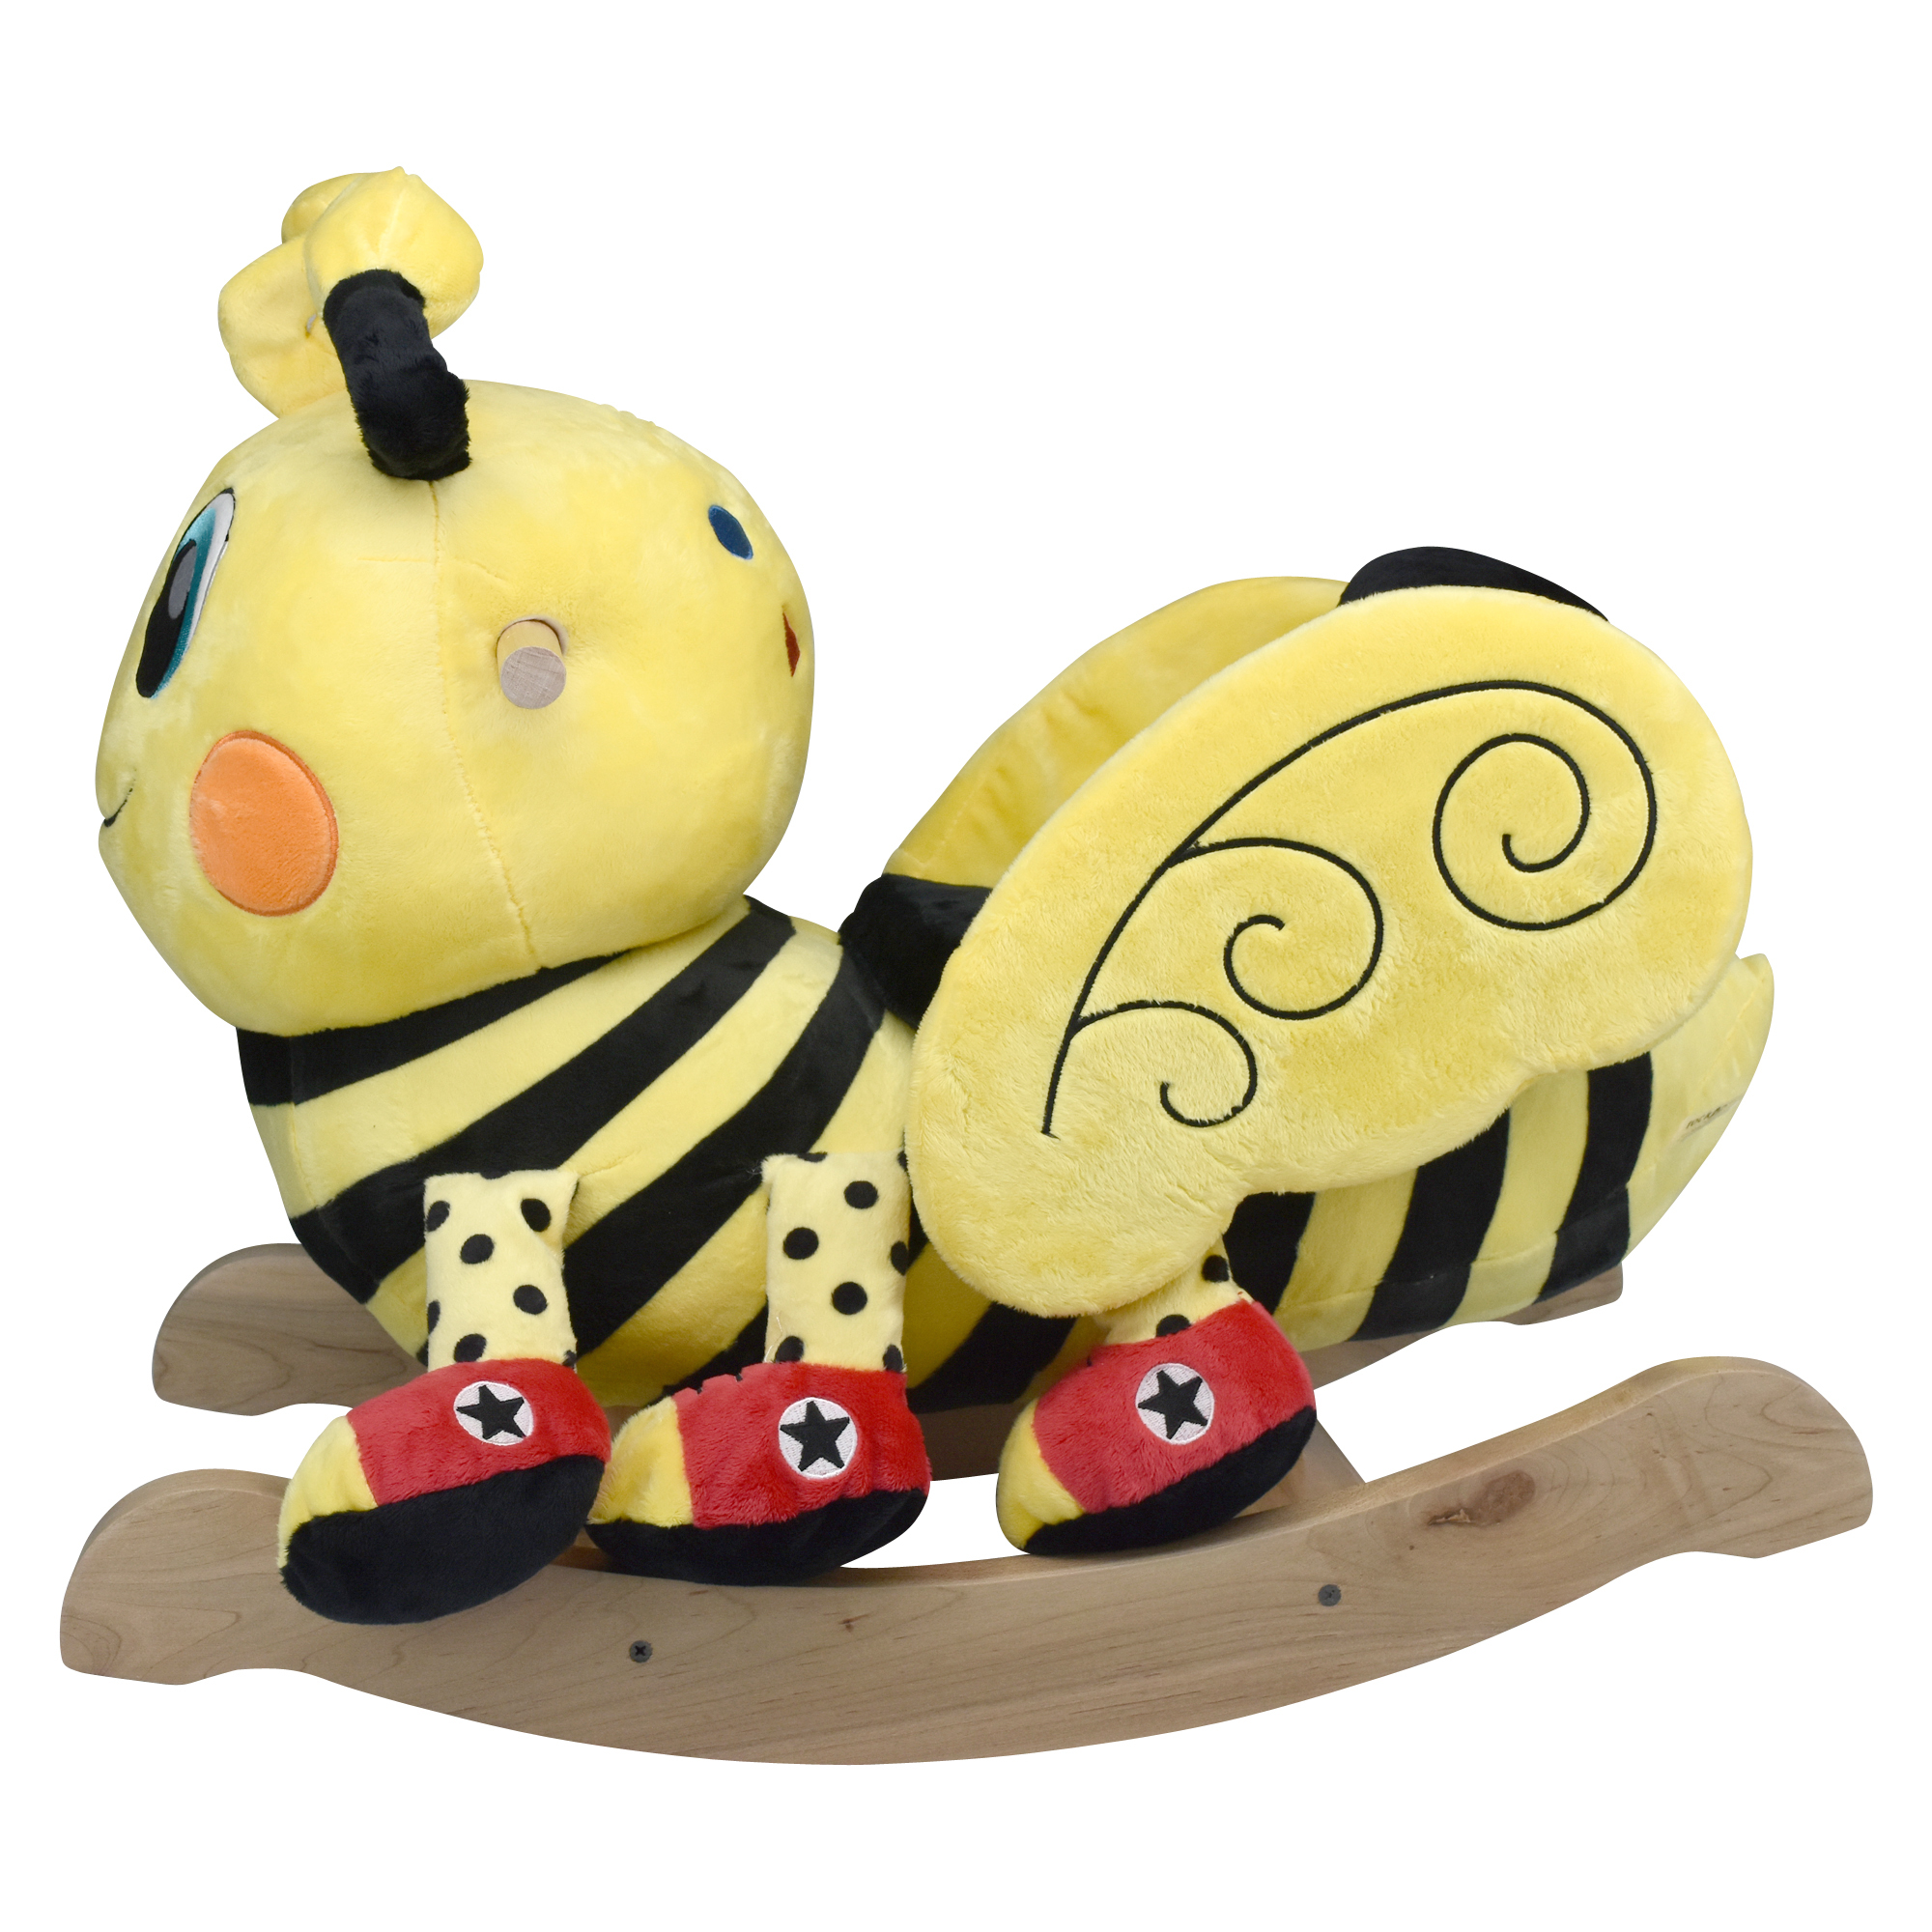 Buzzy Bee Rockabye Baby Rocker back